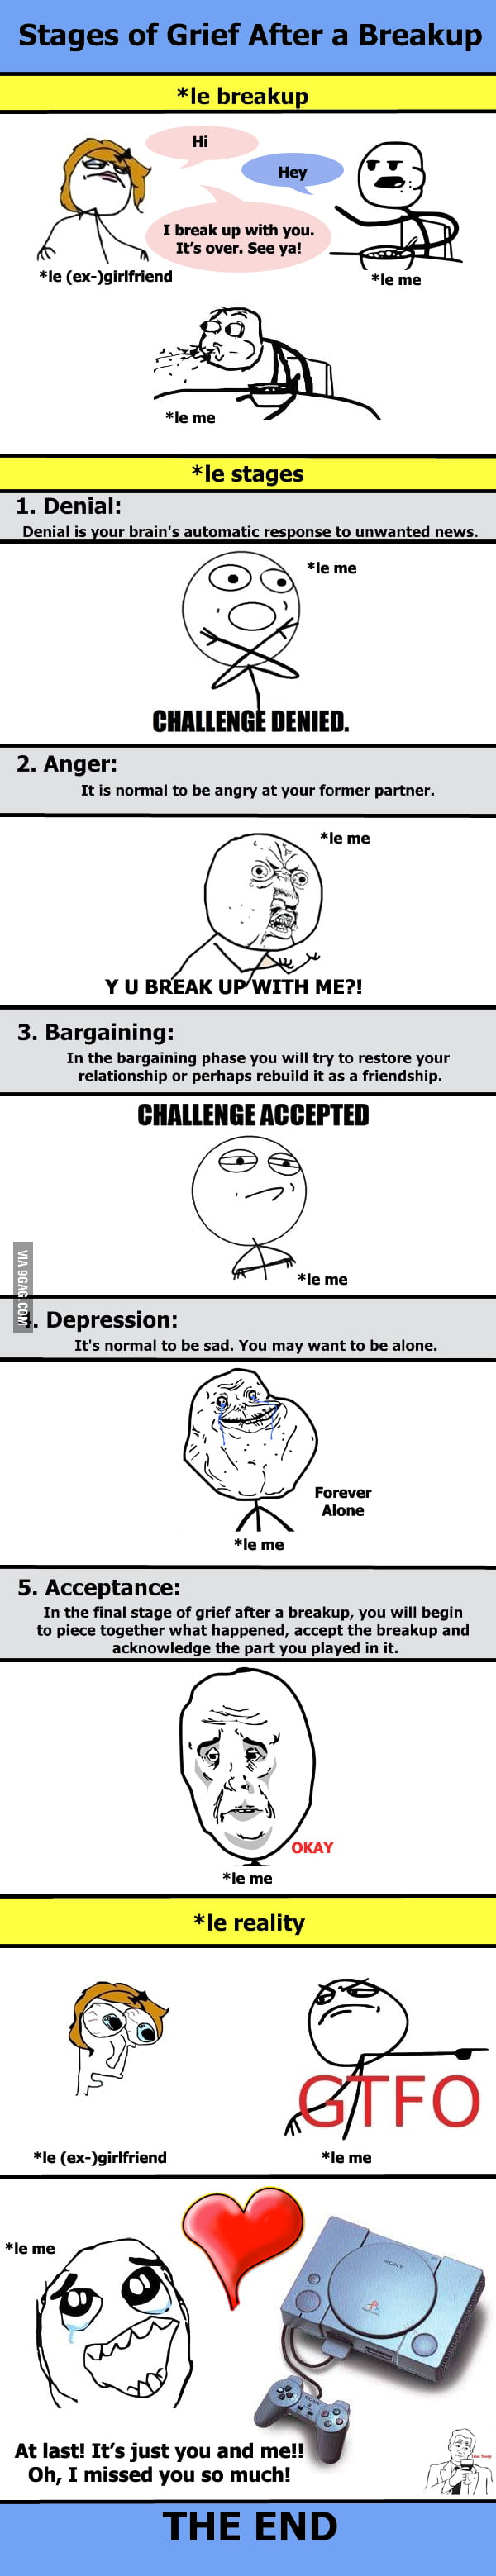 Stages of grief after a break up